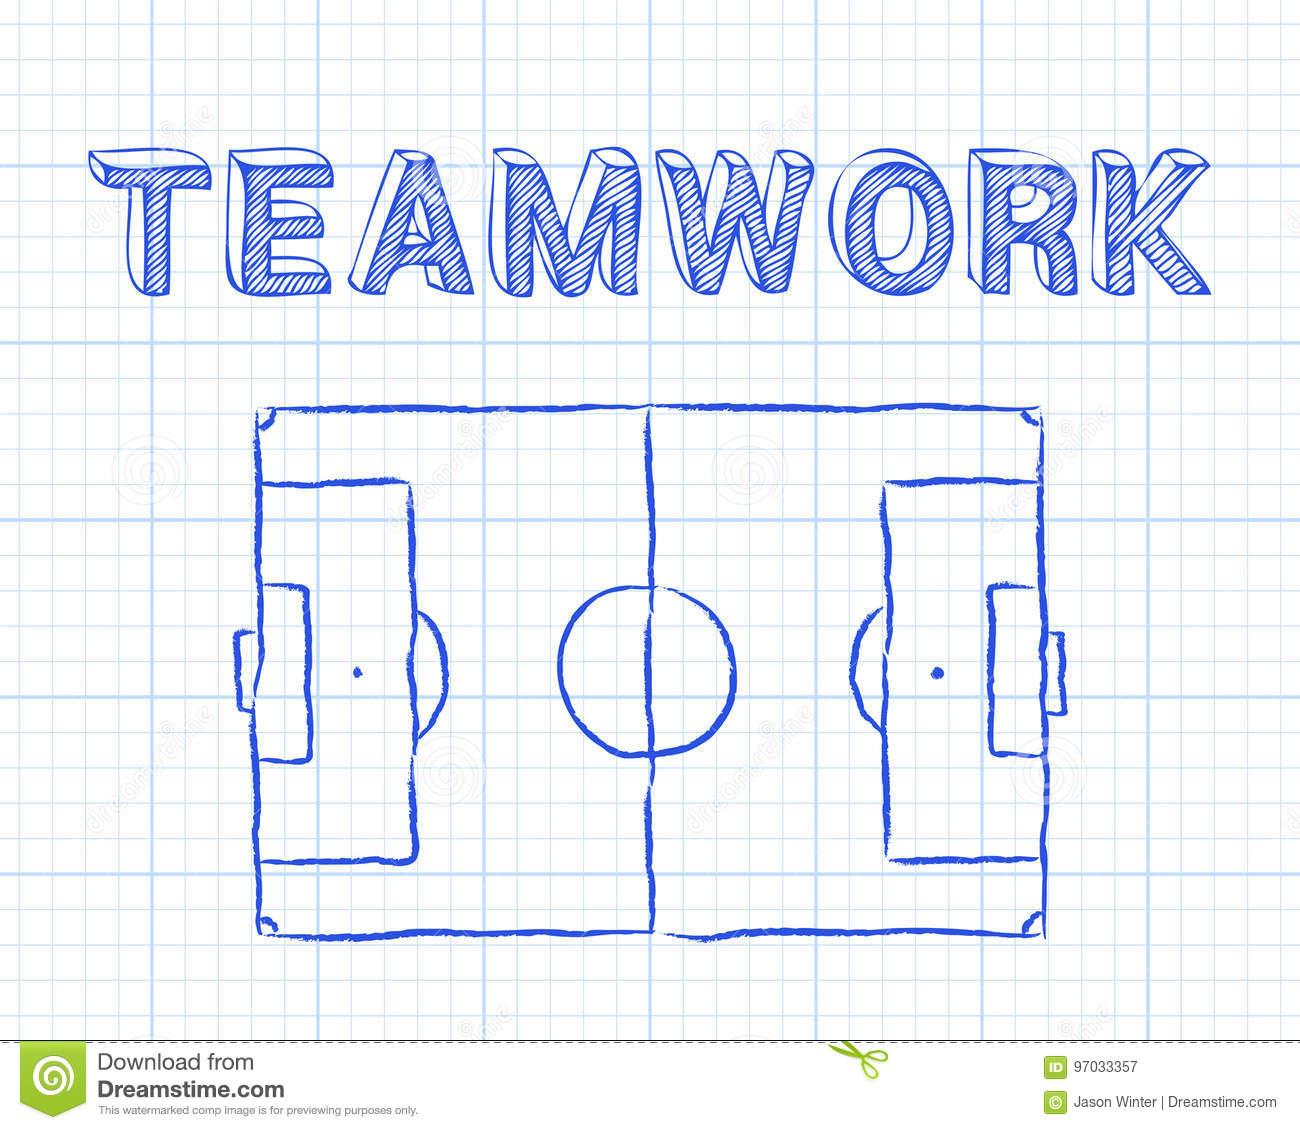 teamwork soccer pitch graph paper football diagram word background 97033357 teamwork soccer pitch graph paper stock vector illustration of